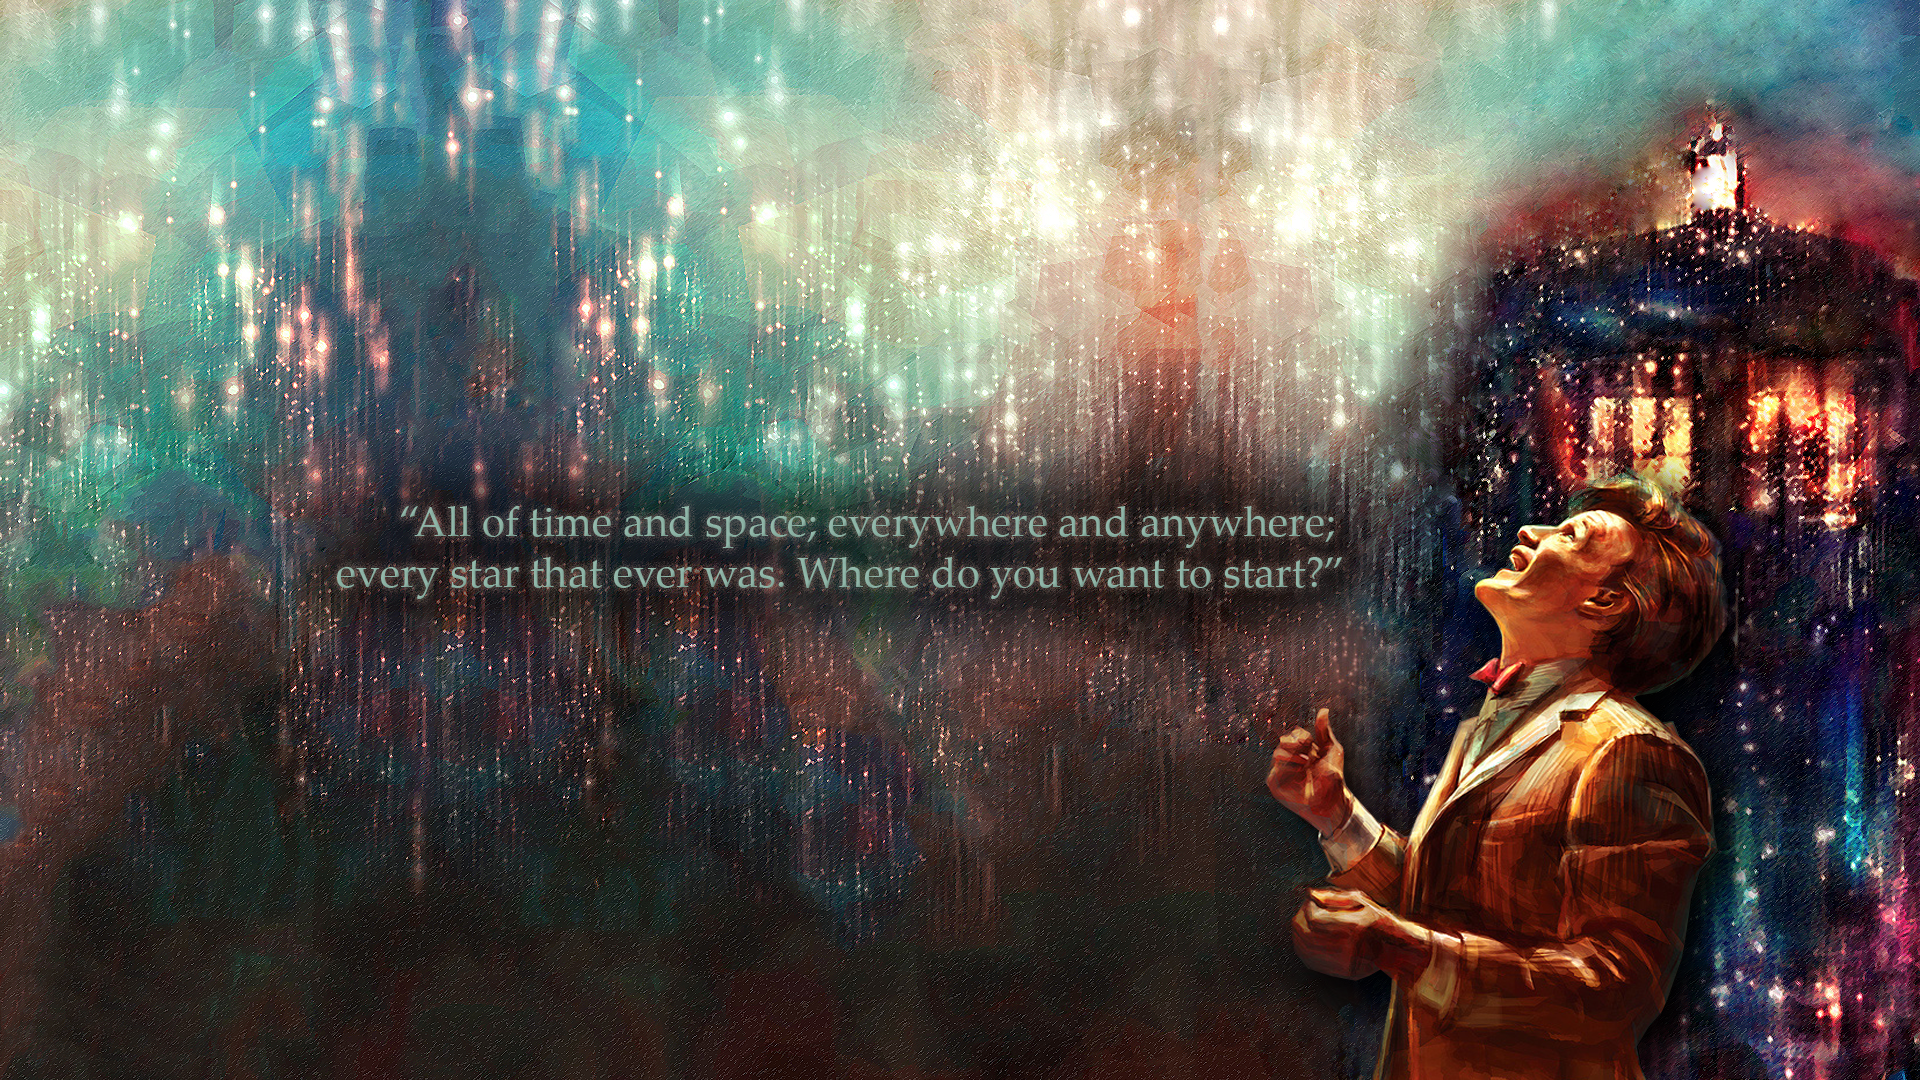 doctor who desktop backgrounds - google search | allons-y